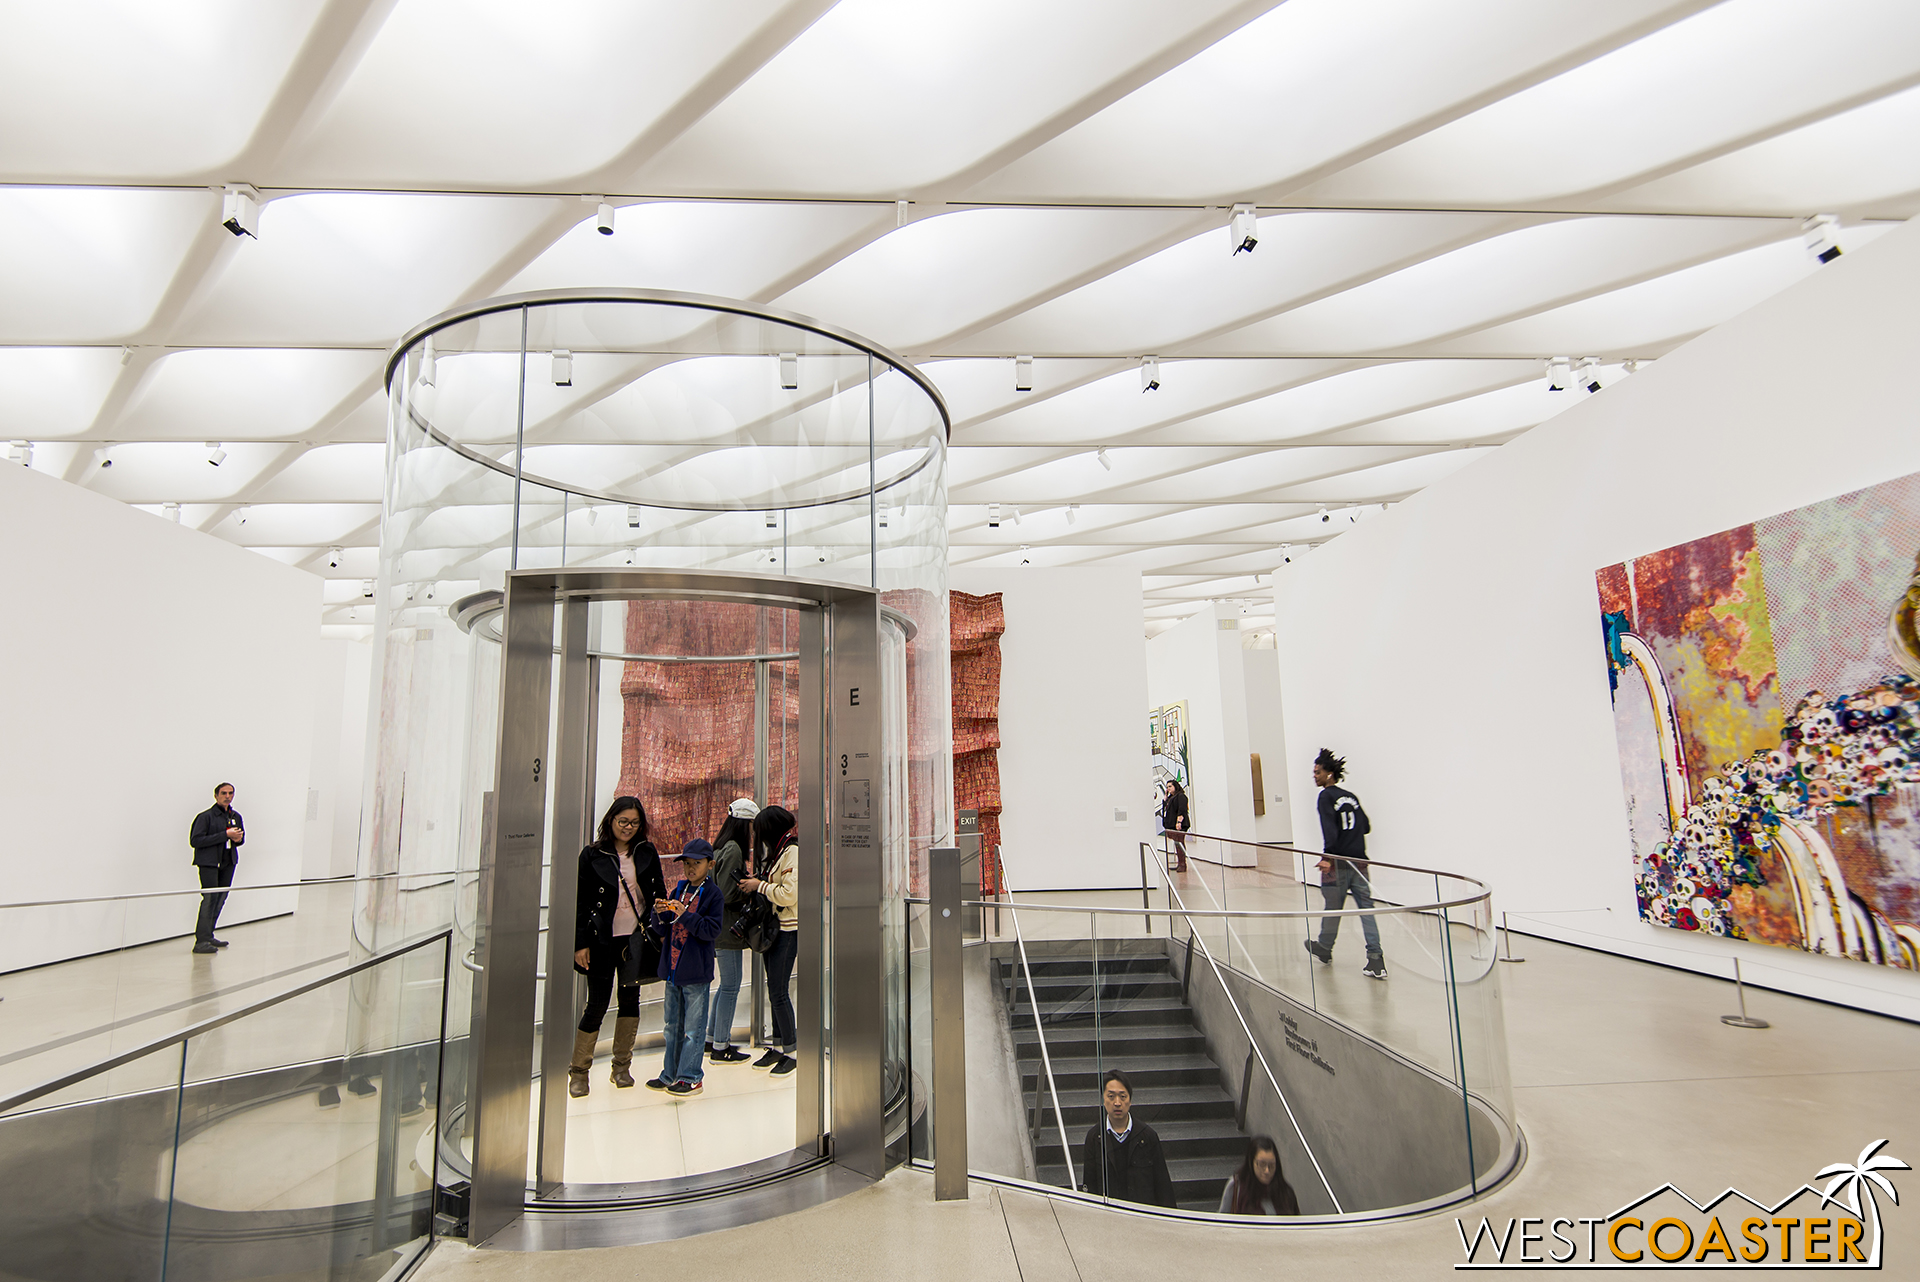 The glass escalator and stair meet at the third floor.